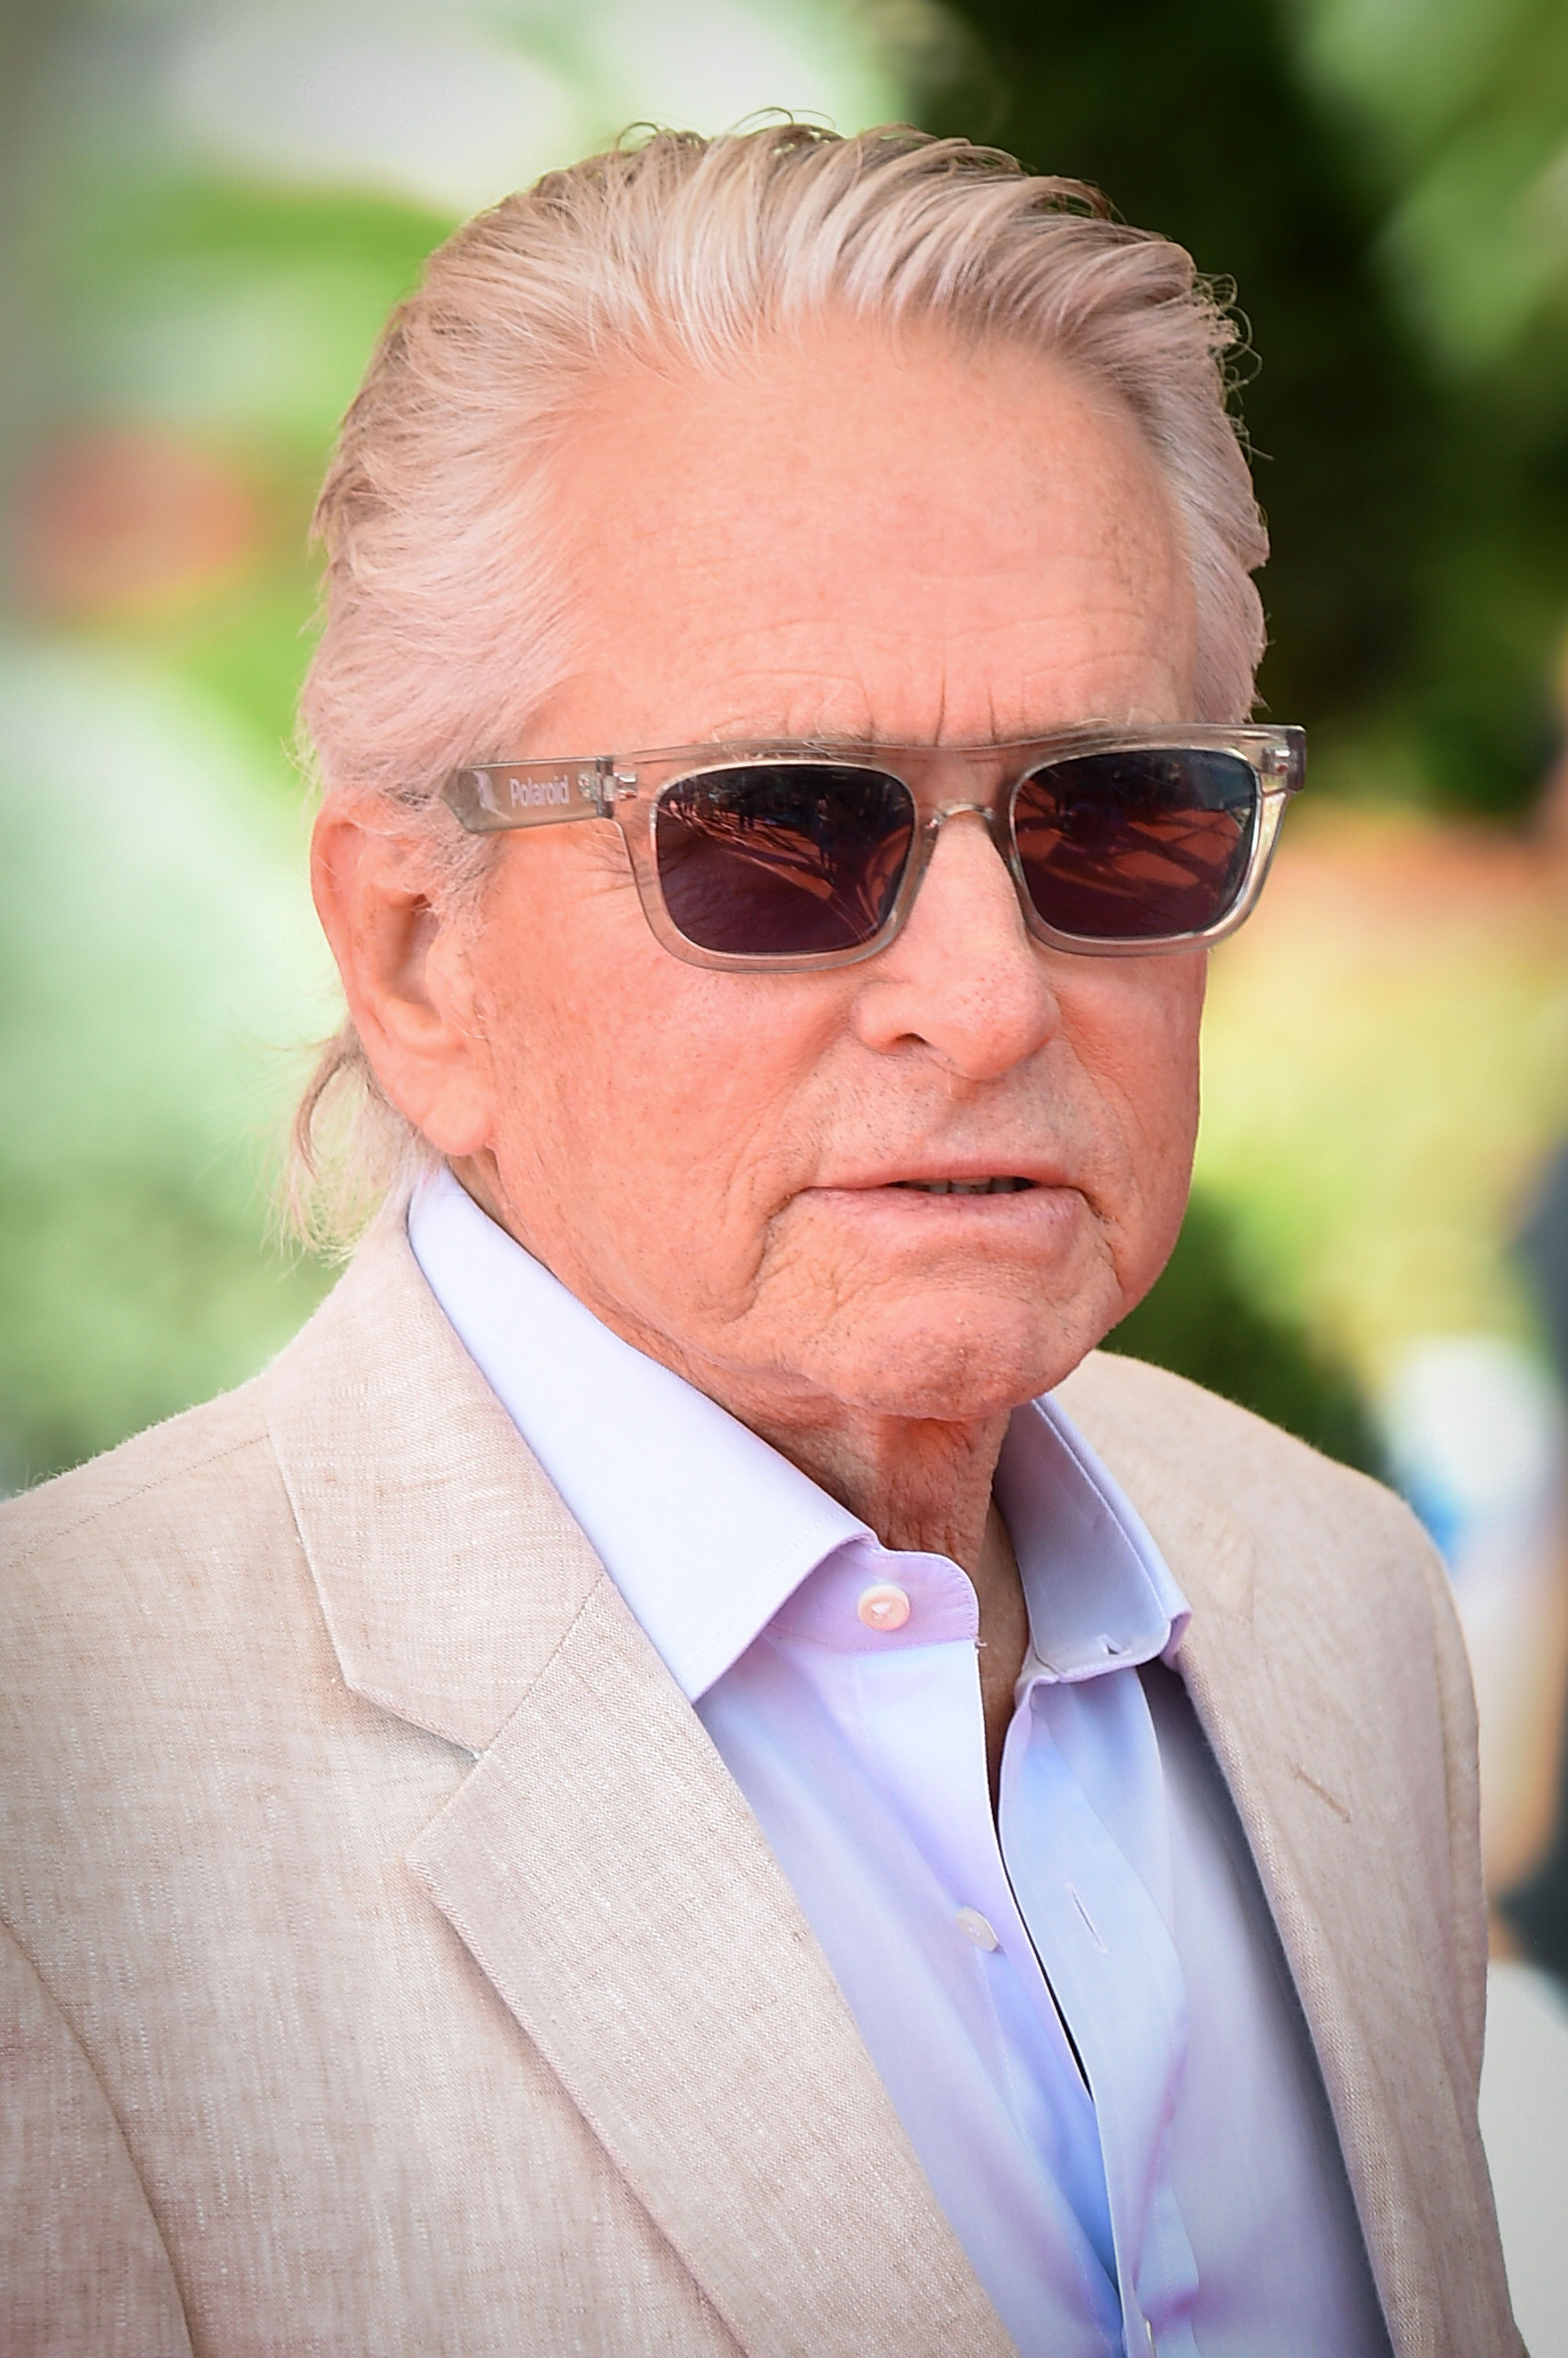 At 74, Michael Douglas' Sunglasses Are Still Better Than Yours